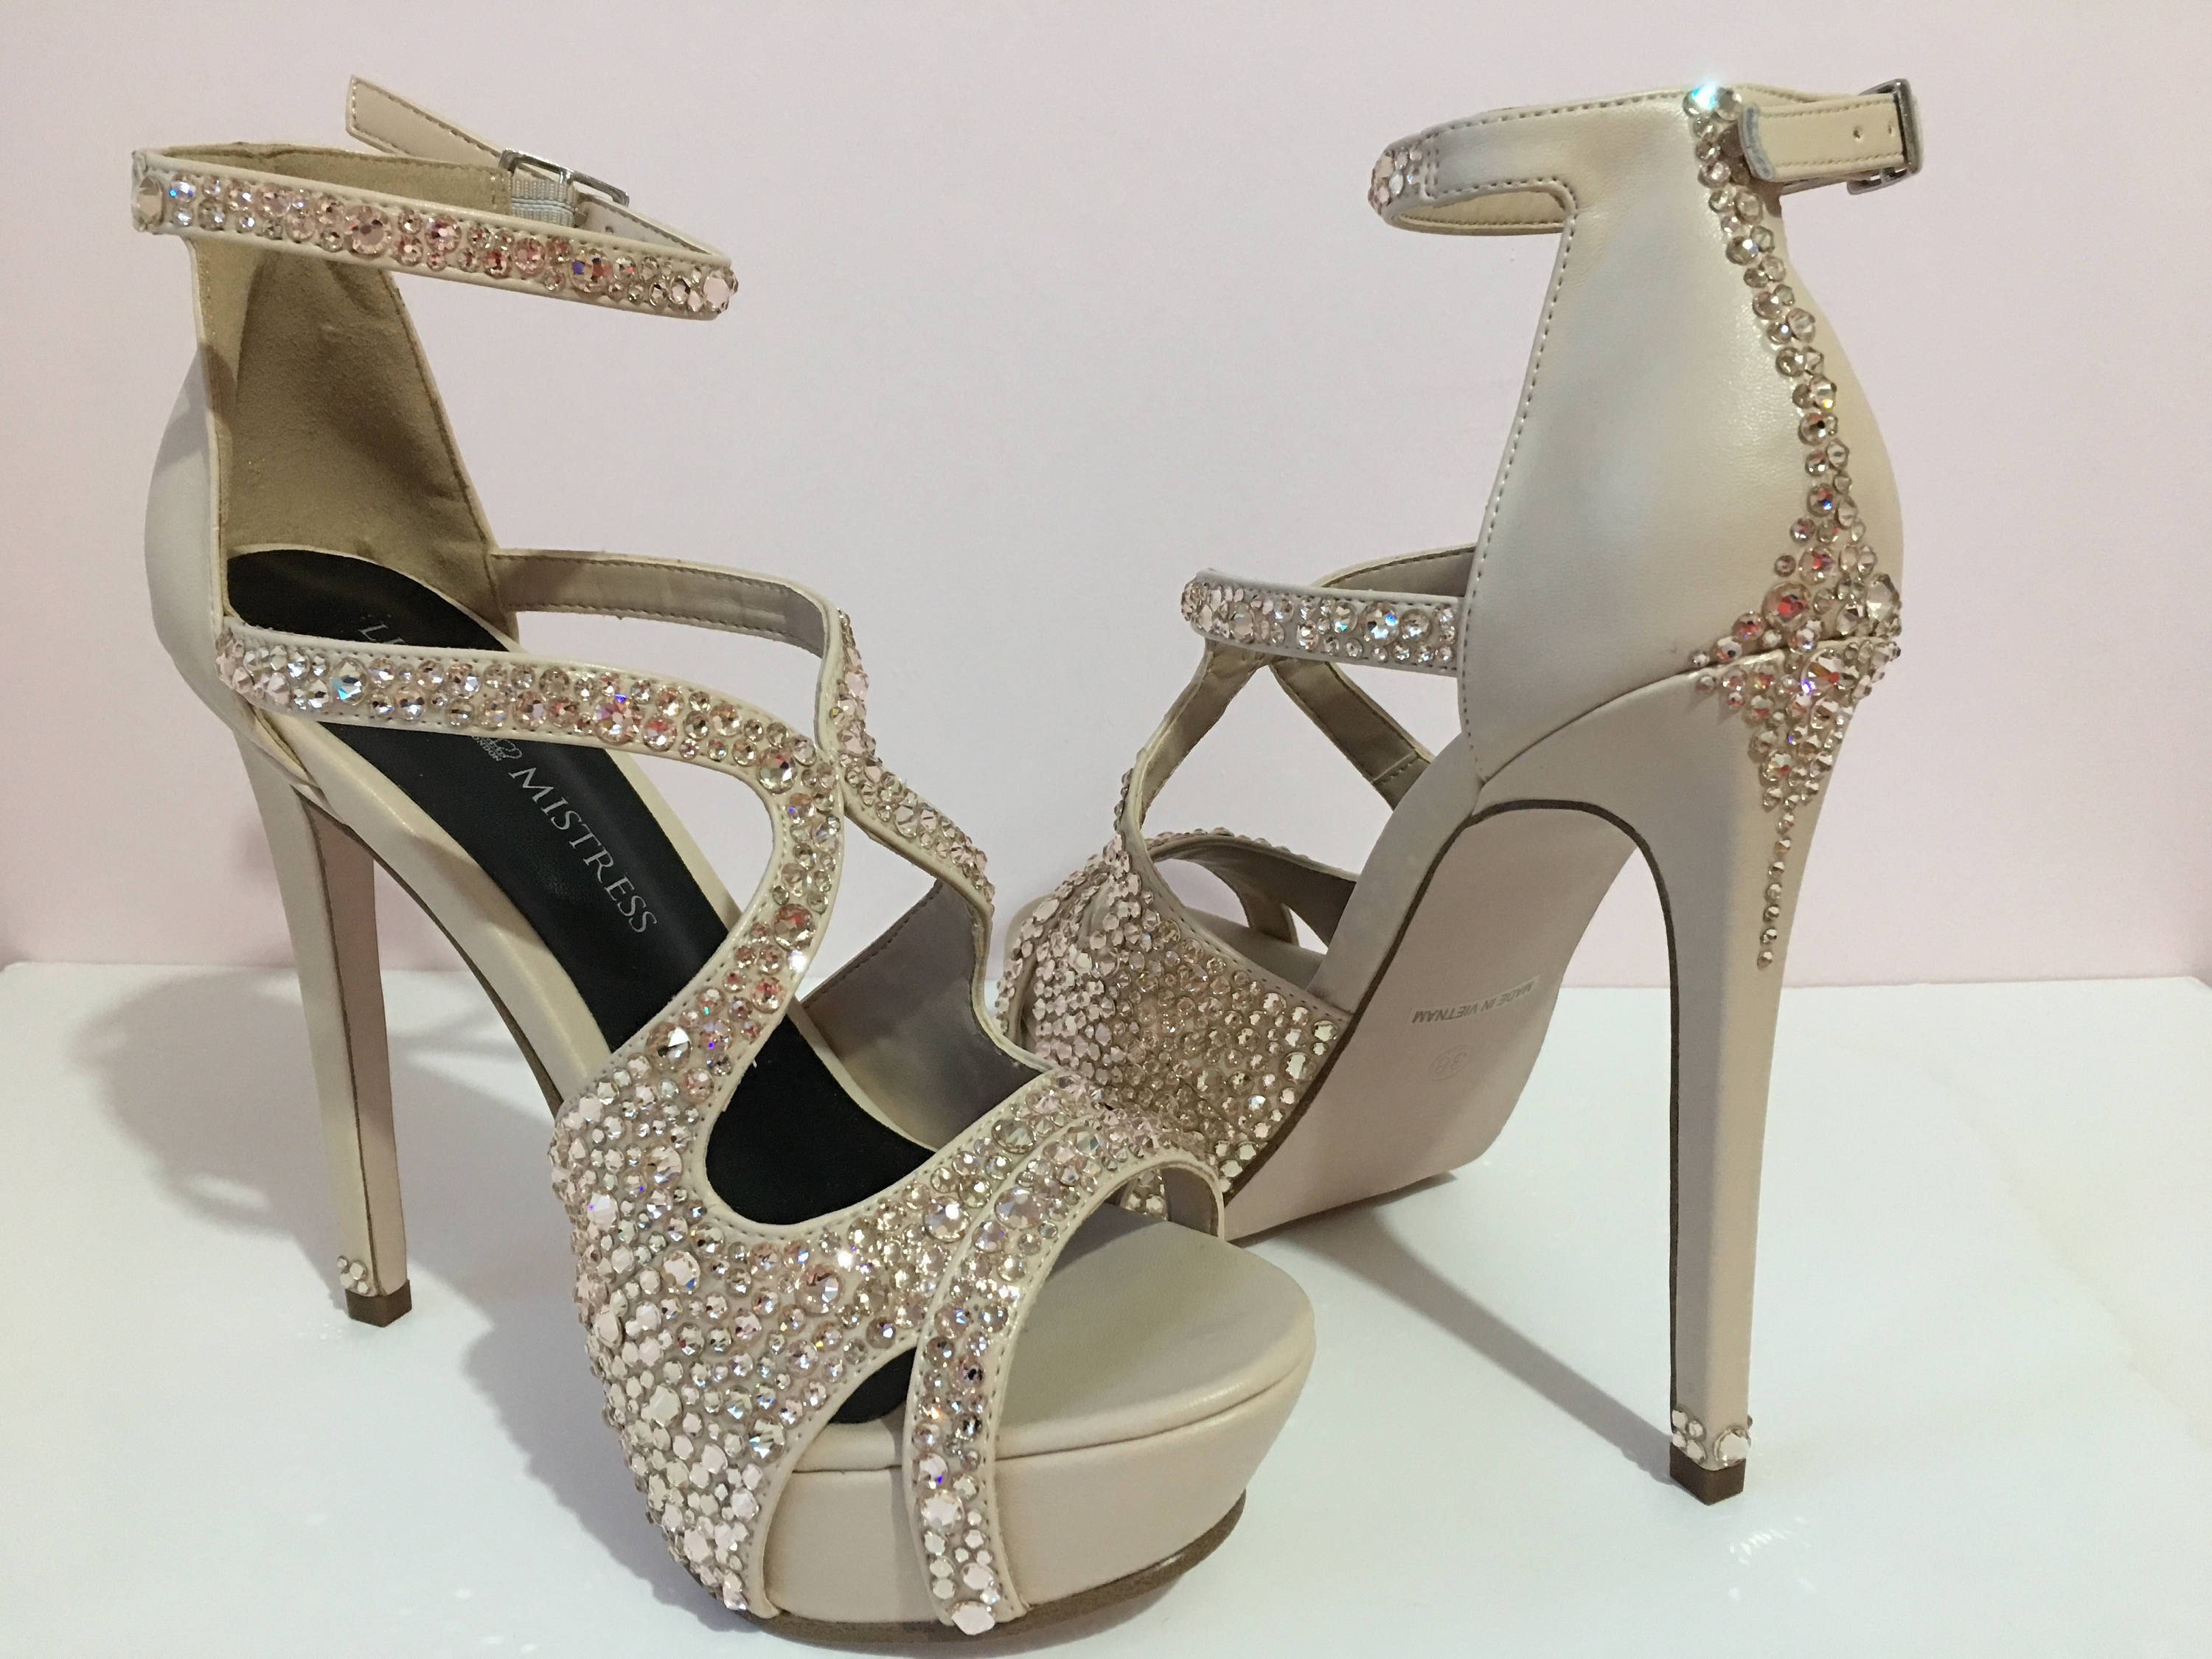 Swarovski Heels  Wedding Shoes Nude Heels Platform Shoes  Statement Shoes